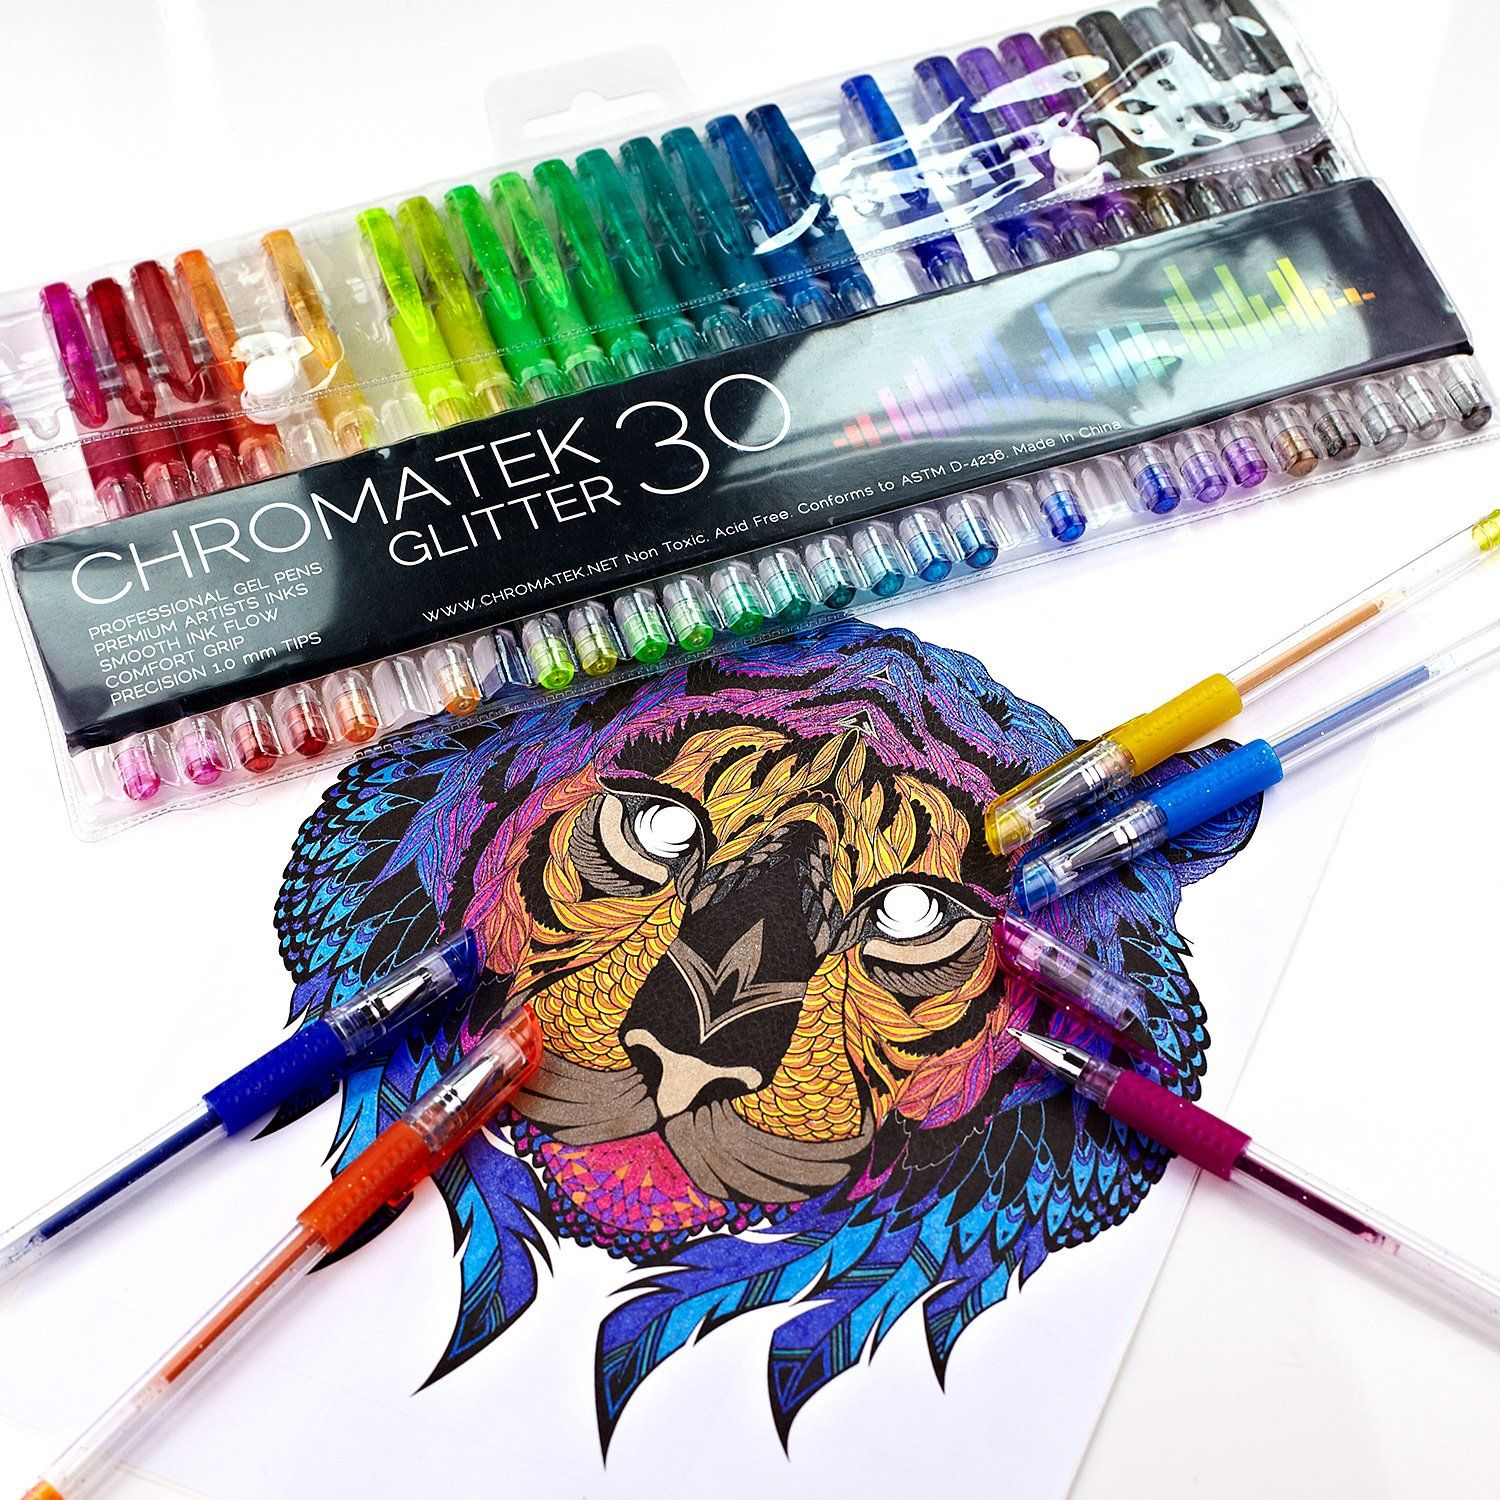 30 No 200/% the Ink: 30 Gel Pens Best Colors Glitter Pens 60 Set by Chromatek